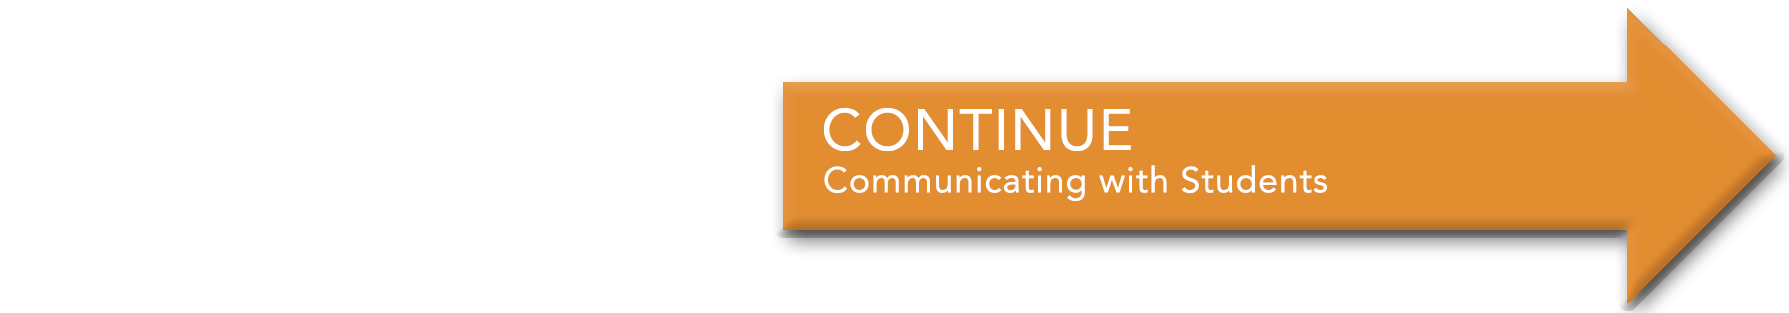 Continue to Communicating with Students